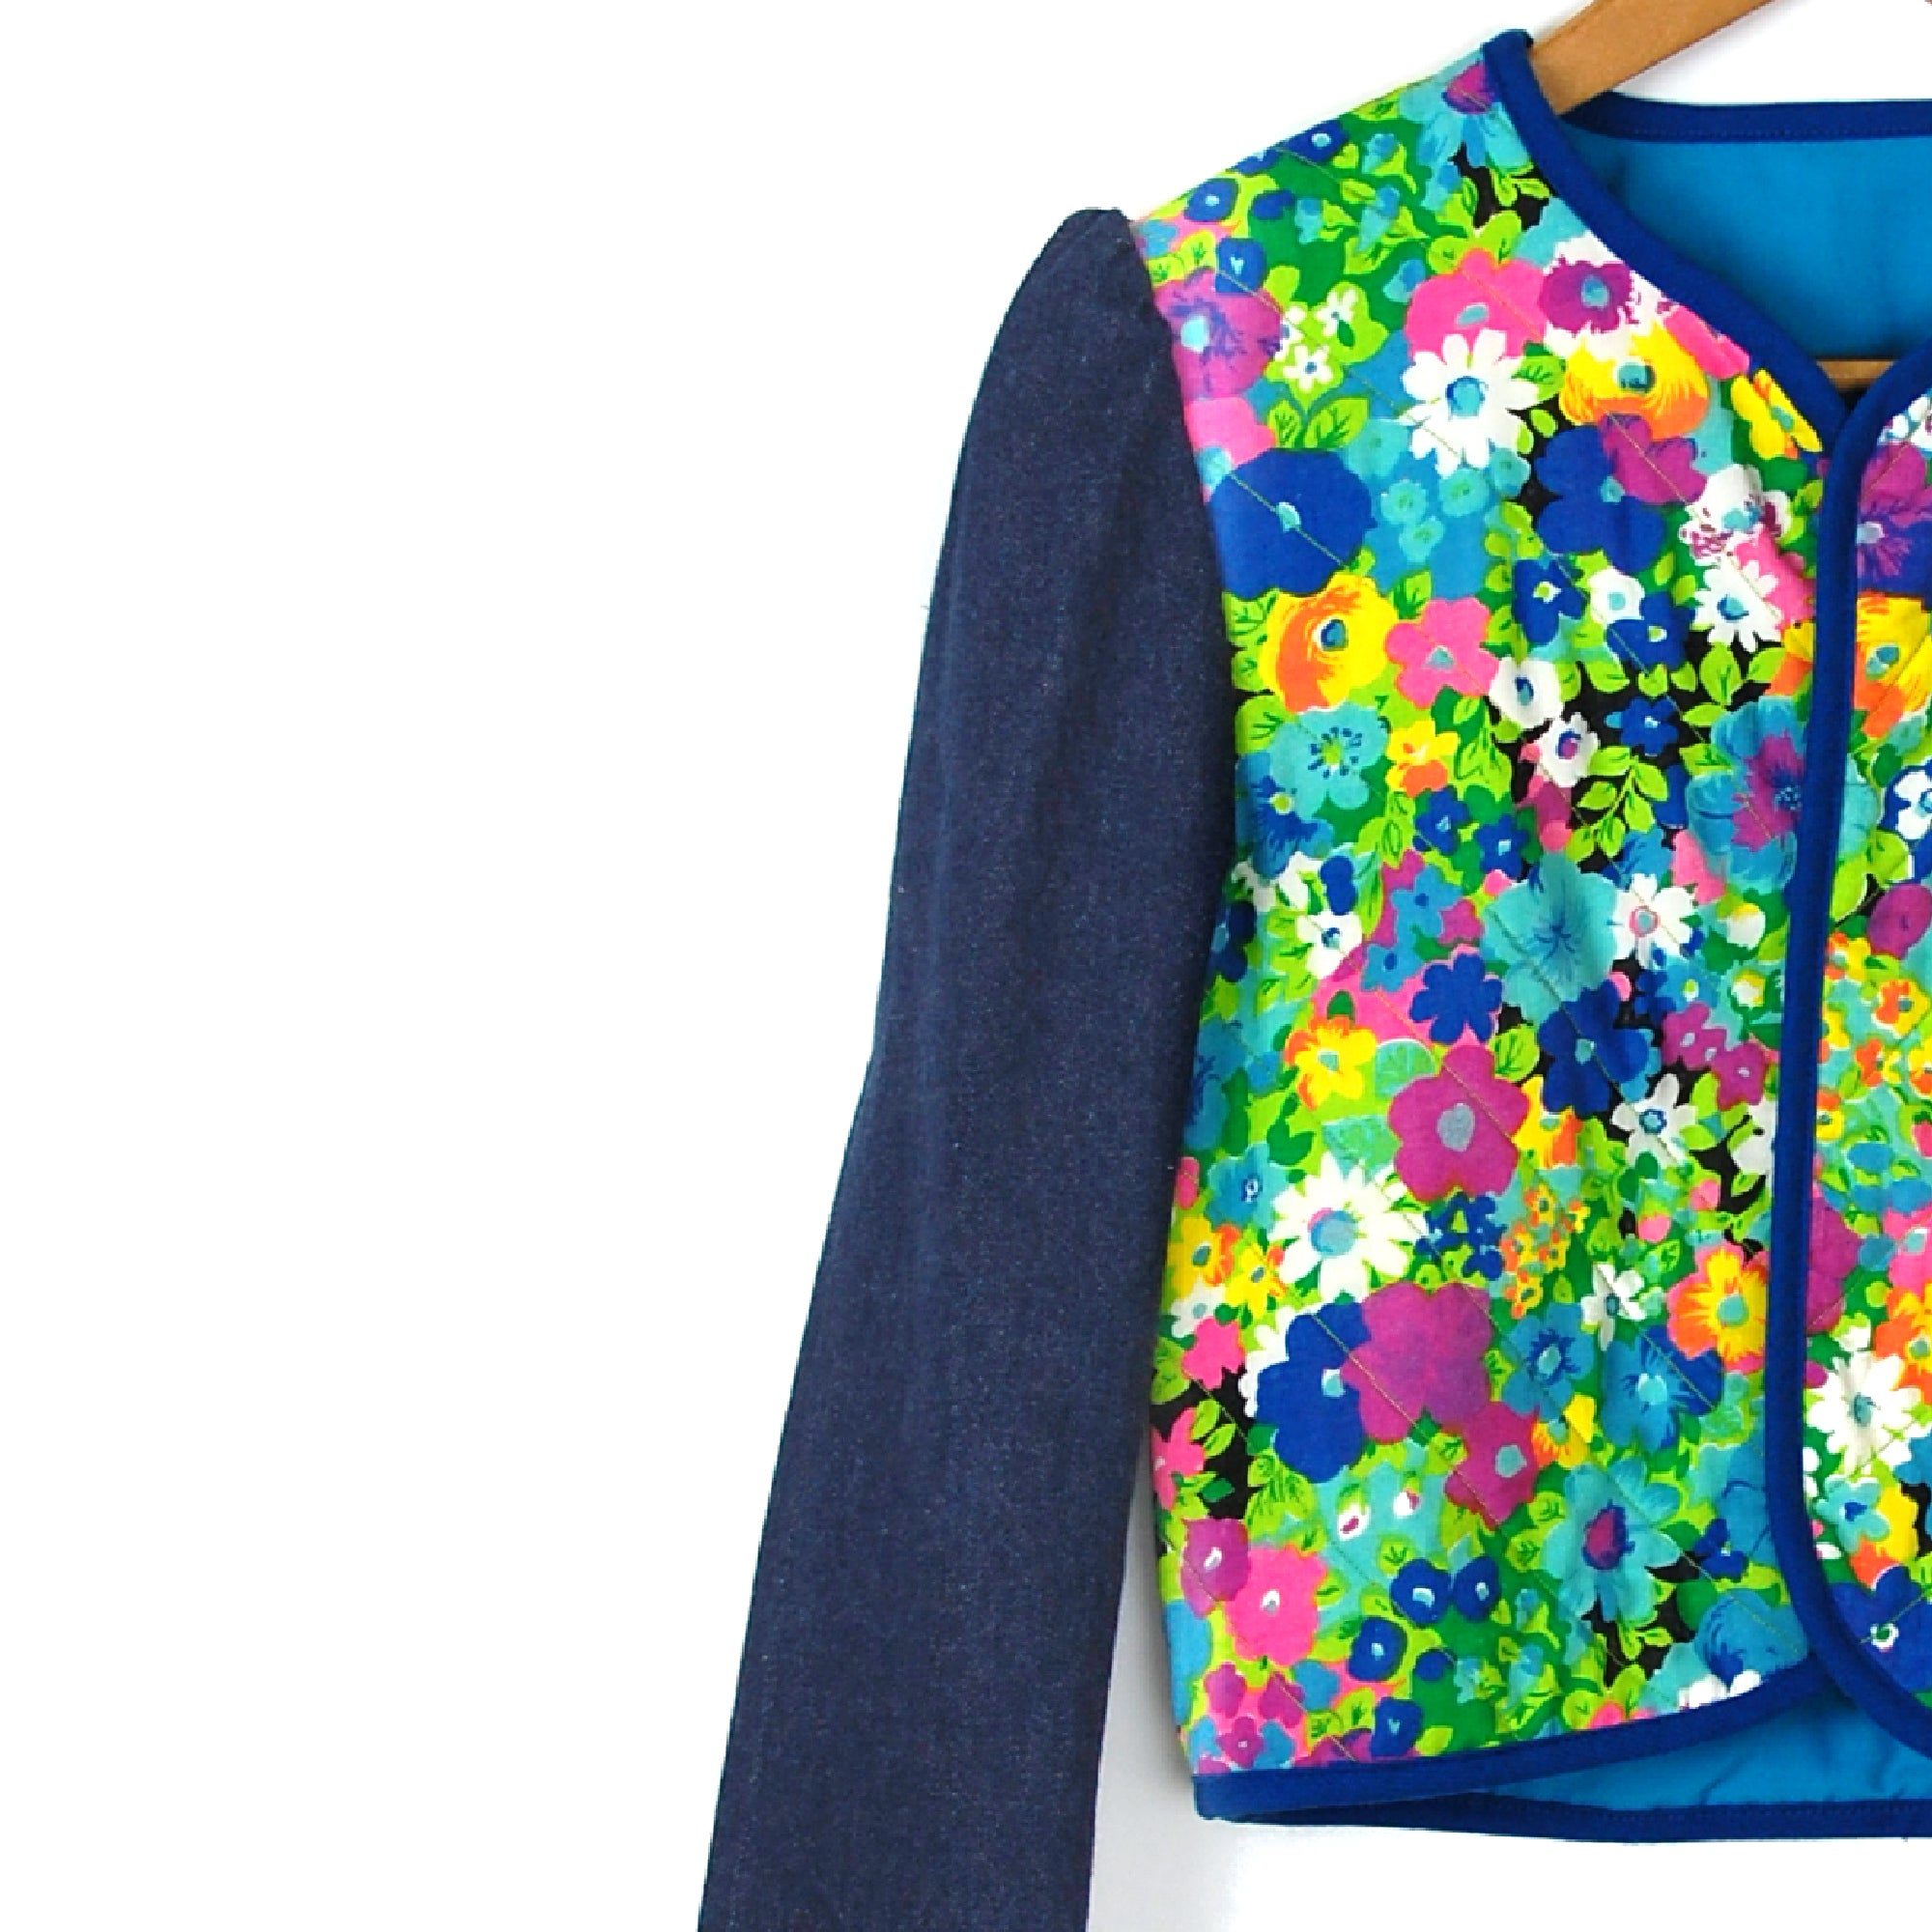 SPRING FEVER QUILTED JACKET - Late to the Party